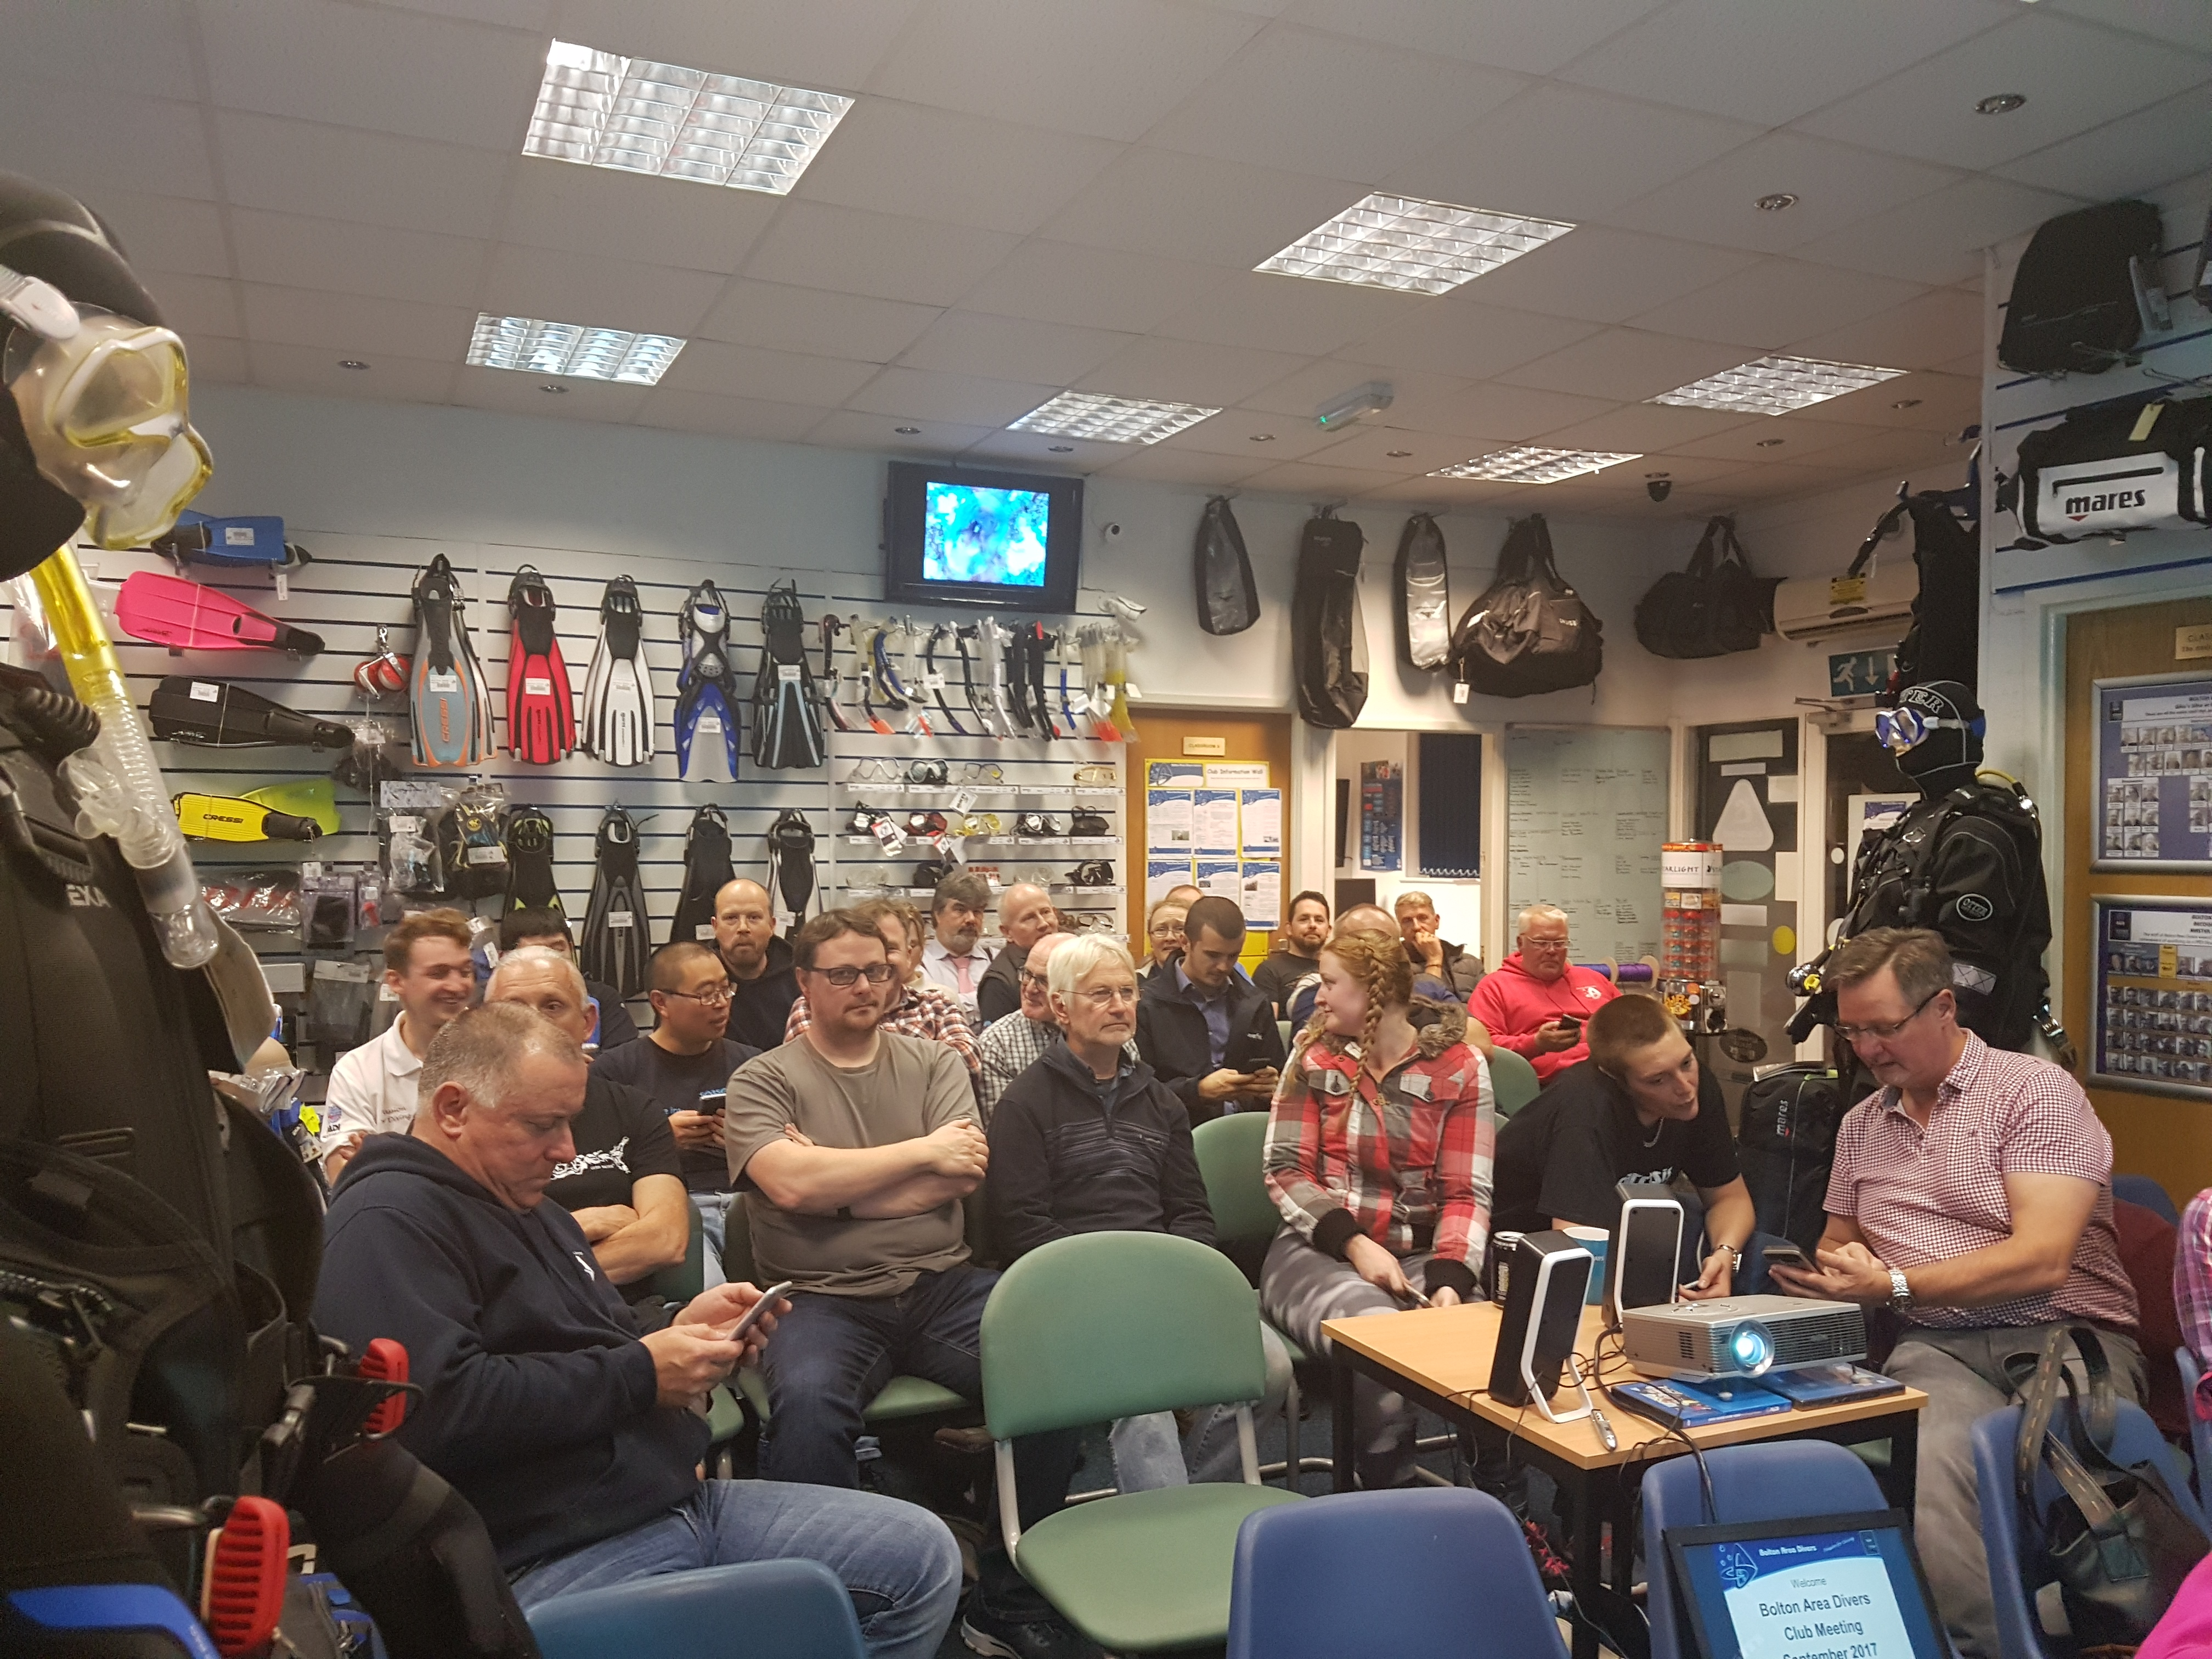 Freediving presentation